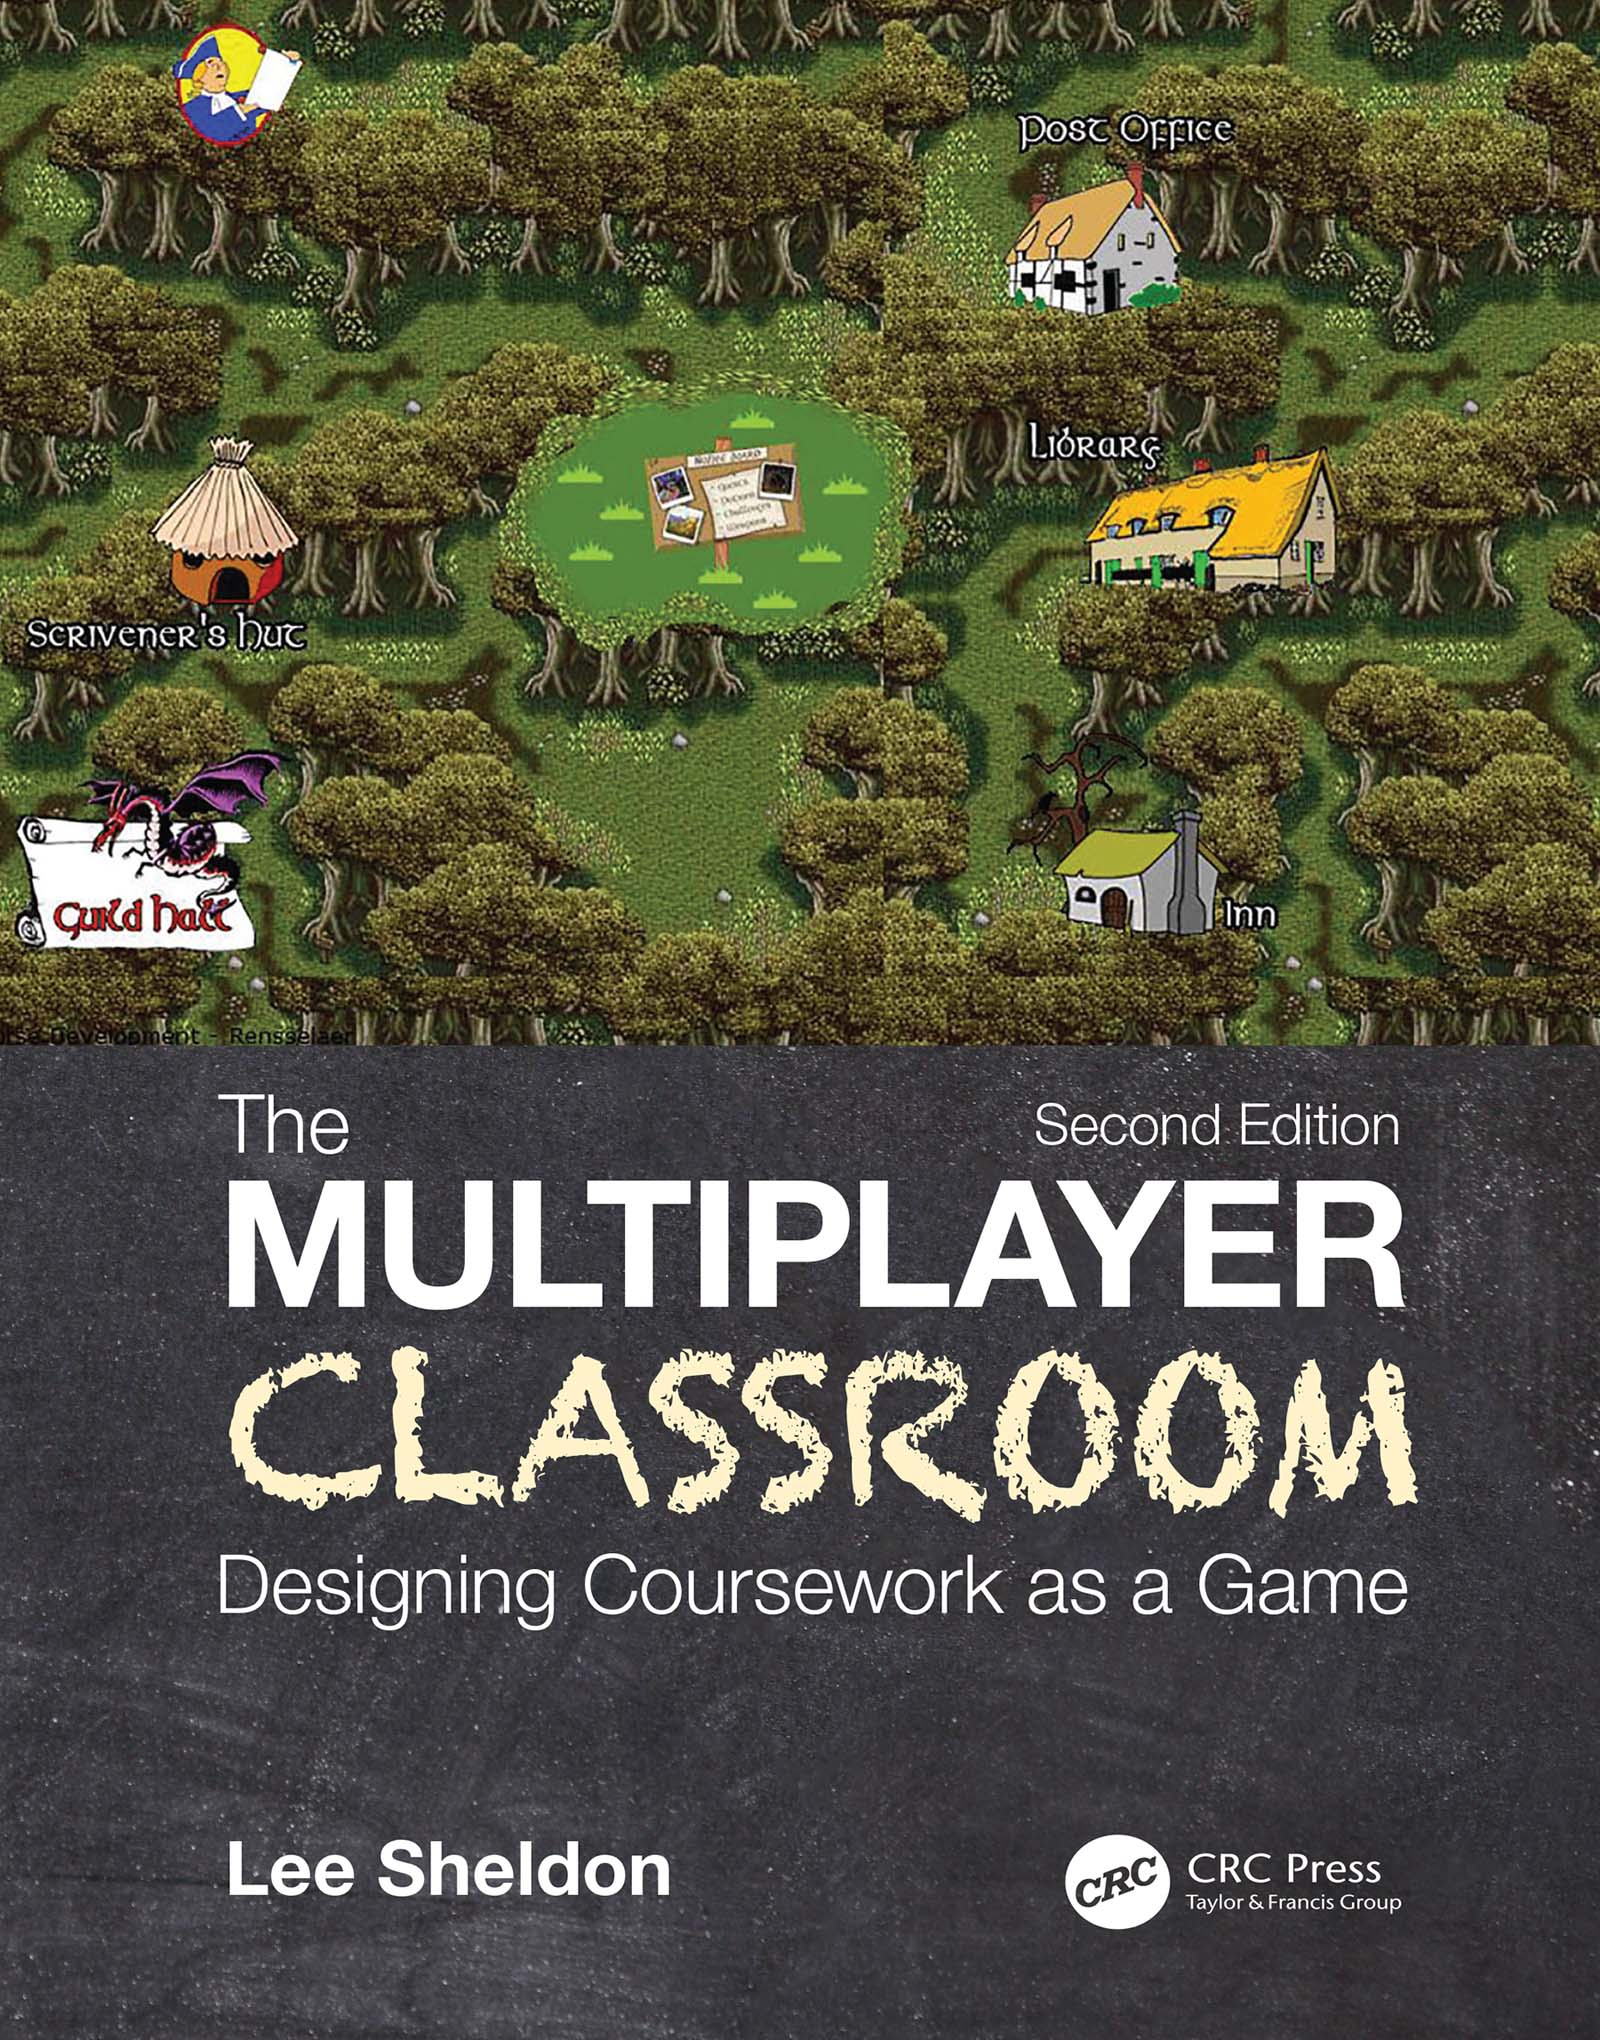 The Multiplayer Classroom: Designing Coursework as a Game book cover